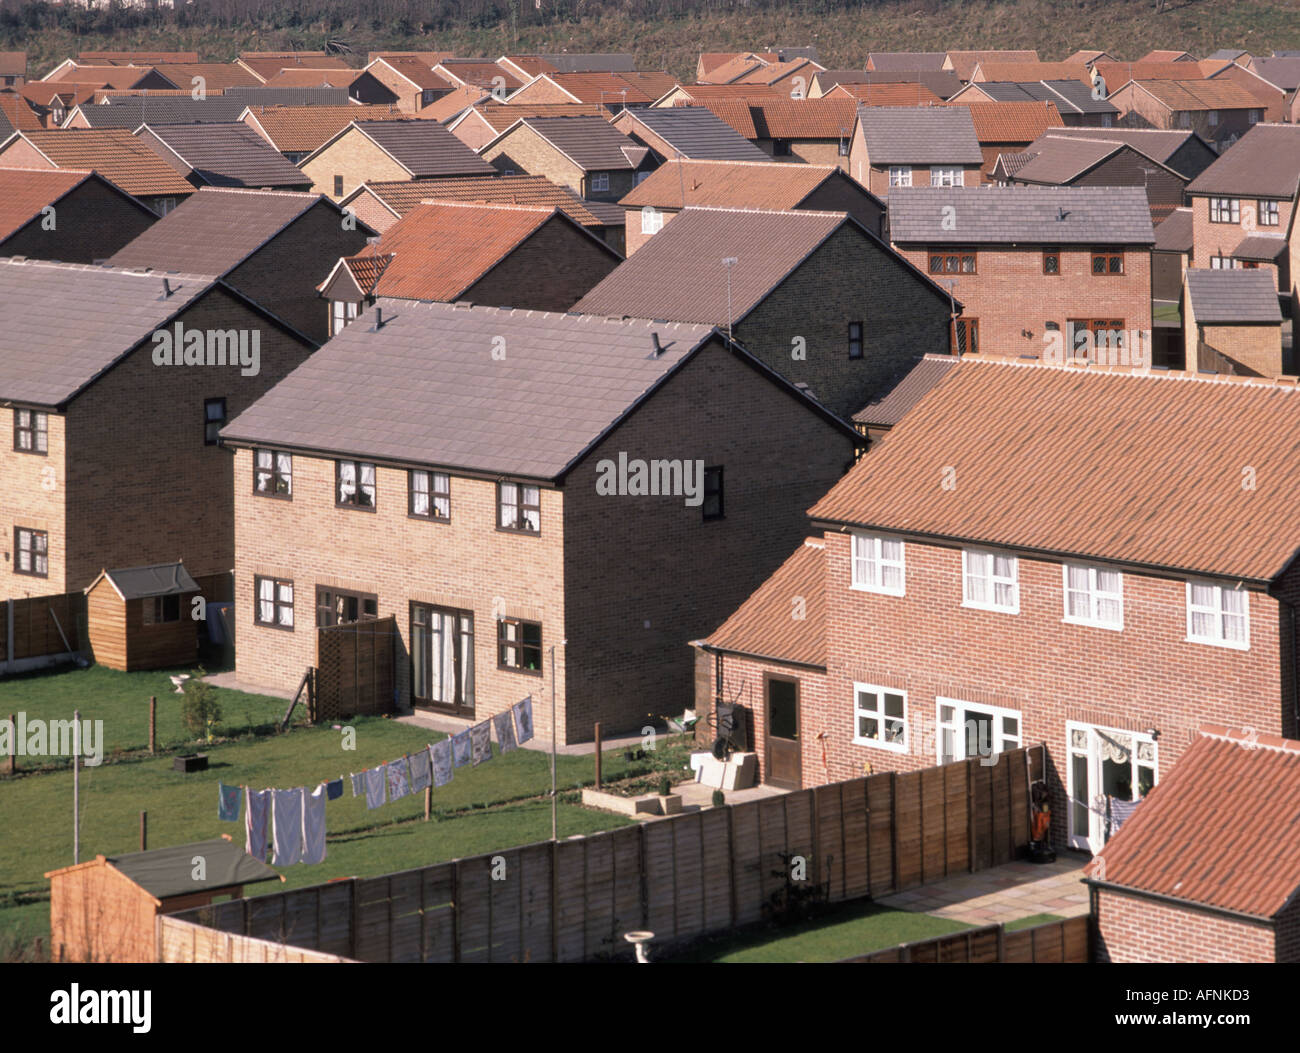 Essex housing estate built early 1990s without conventional chimney flues - Stock Image